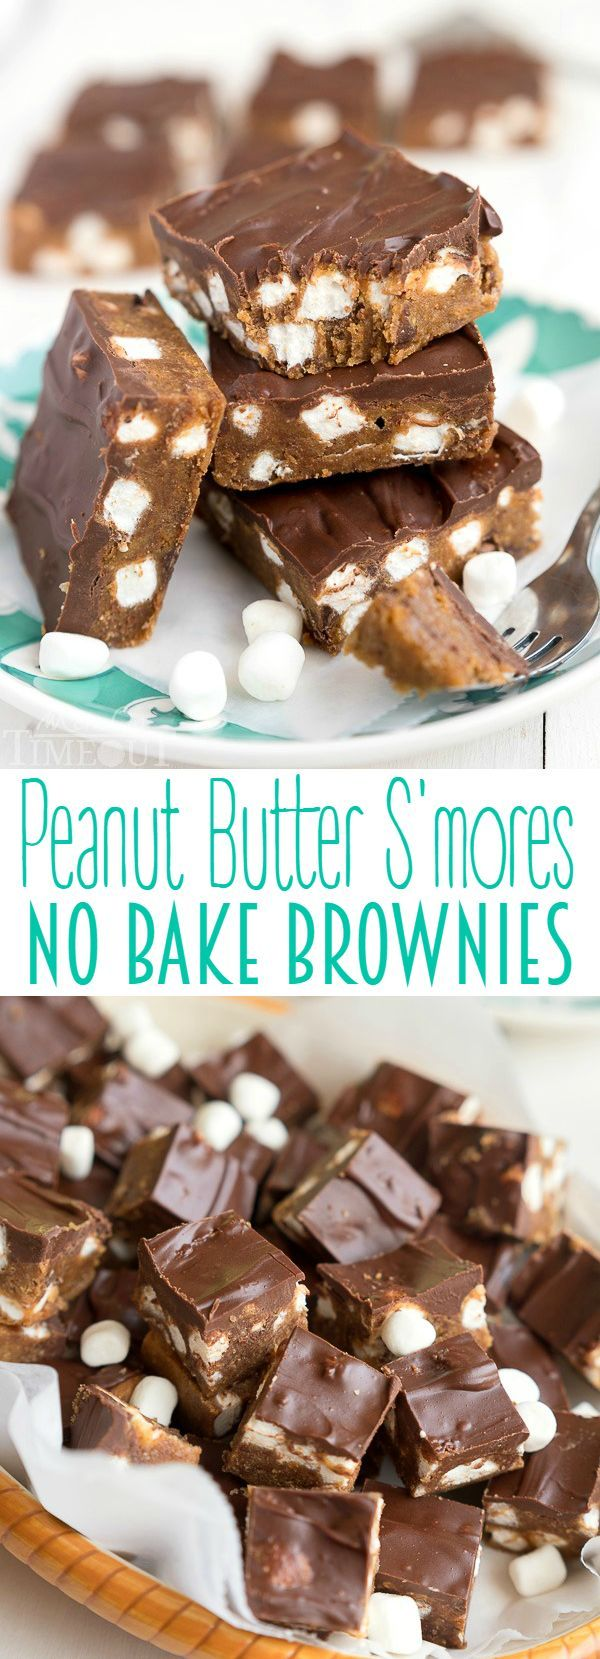 Peanut Butter S'mores No Bake Brownies - Can be whipped up in a jiffy and are just perfect for the hot summer months!